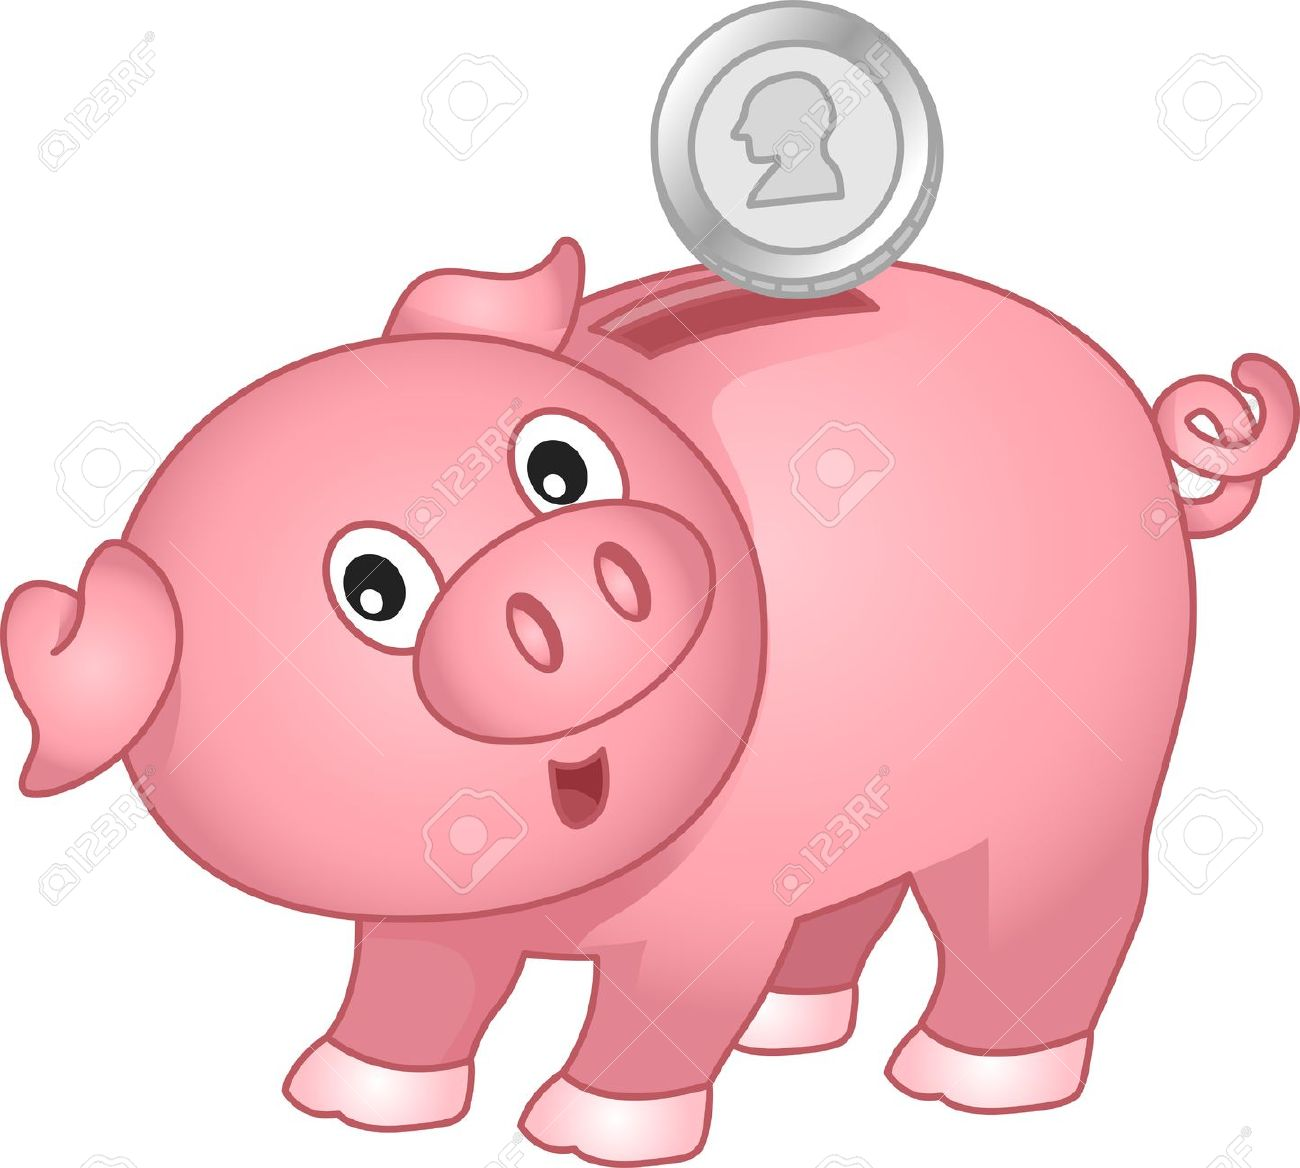 Clip art clipartfest illustration. Animated piggy bank clipart